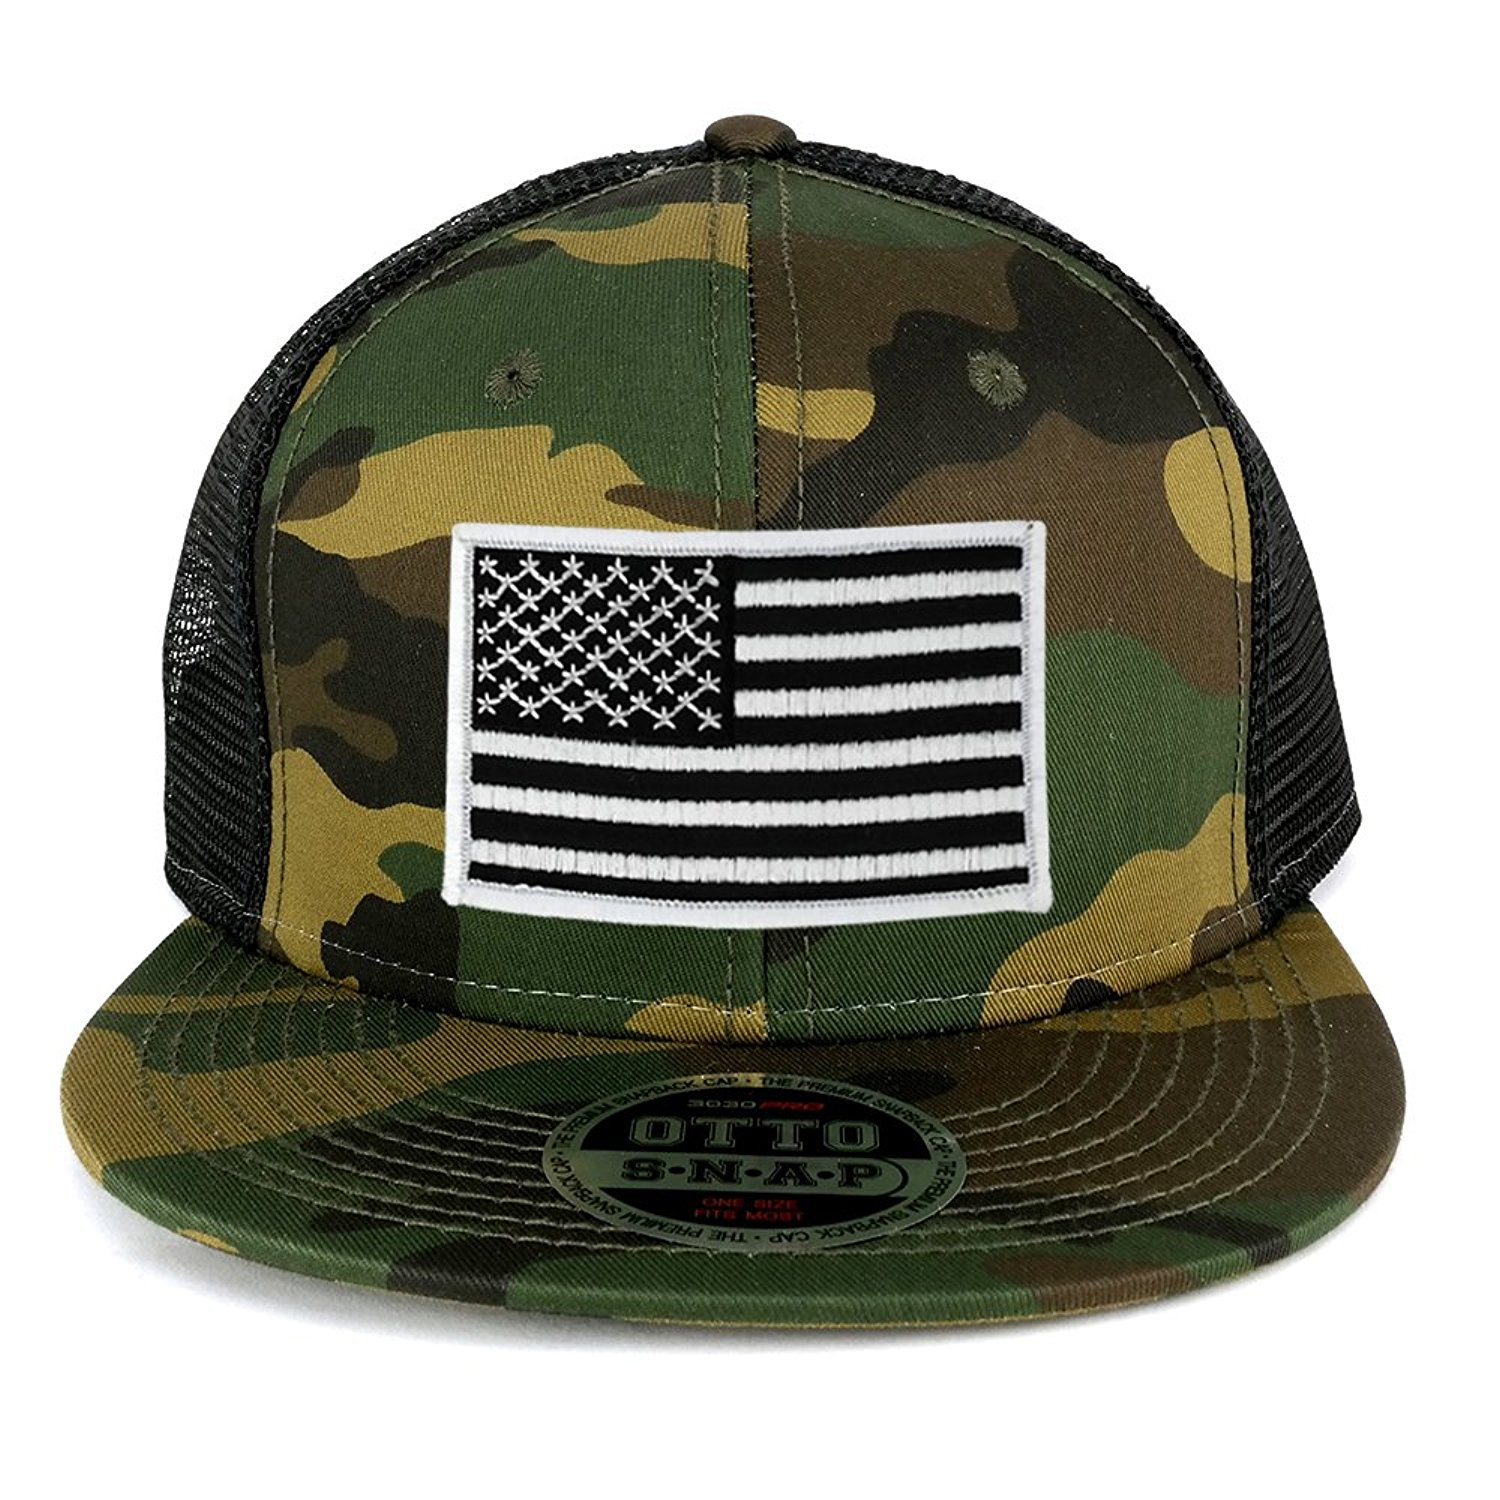 9e288886352b17 Get Quotations · USA American Flag Embroidered Patch Camo Snapback Mesh Cap  - CAMO BLACK